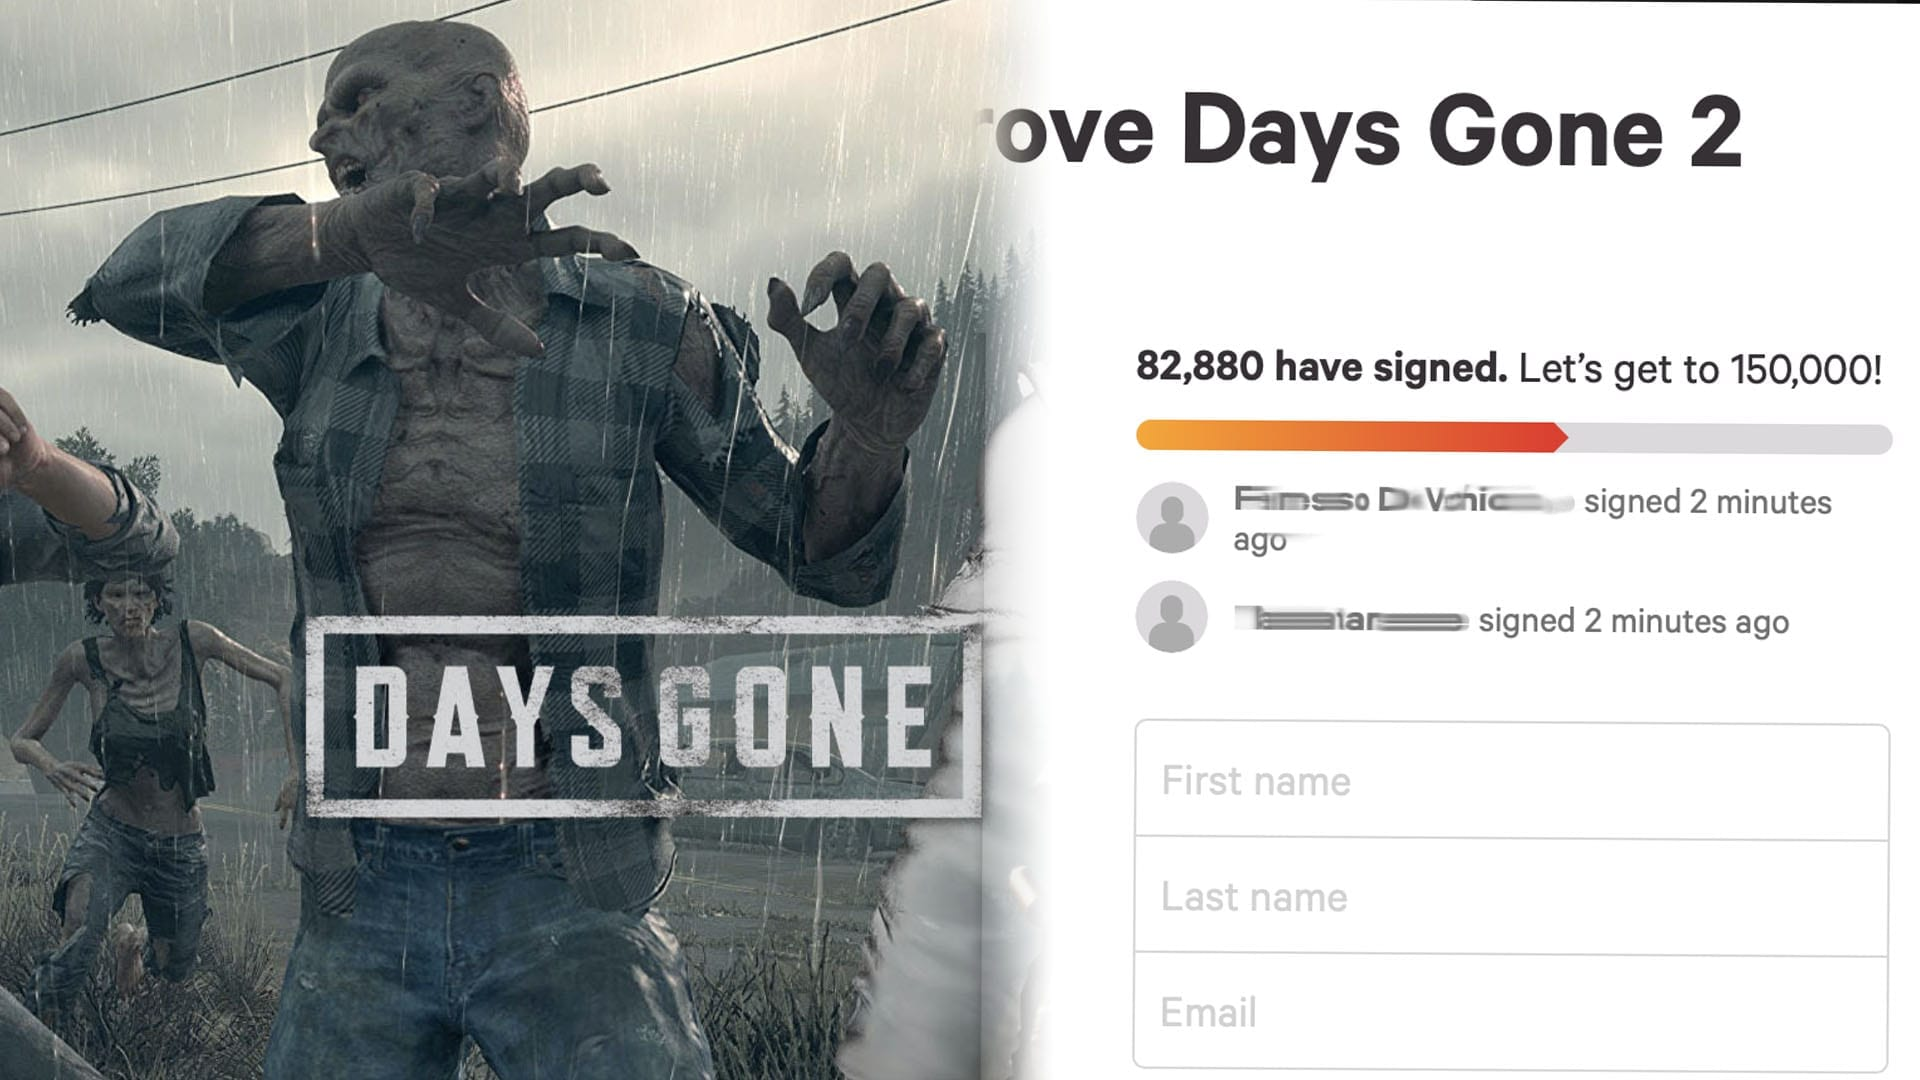 Days Gone 2 Petition Receives Over 82,000 signatures